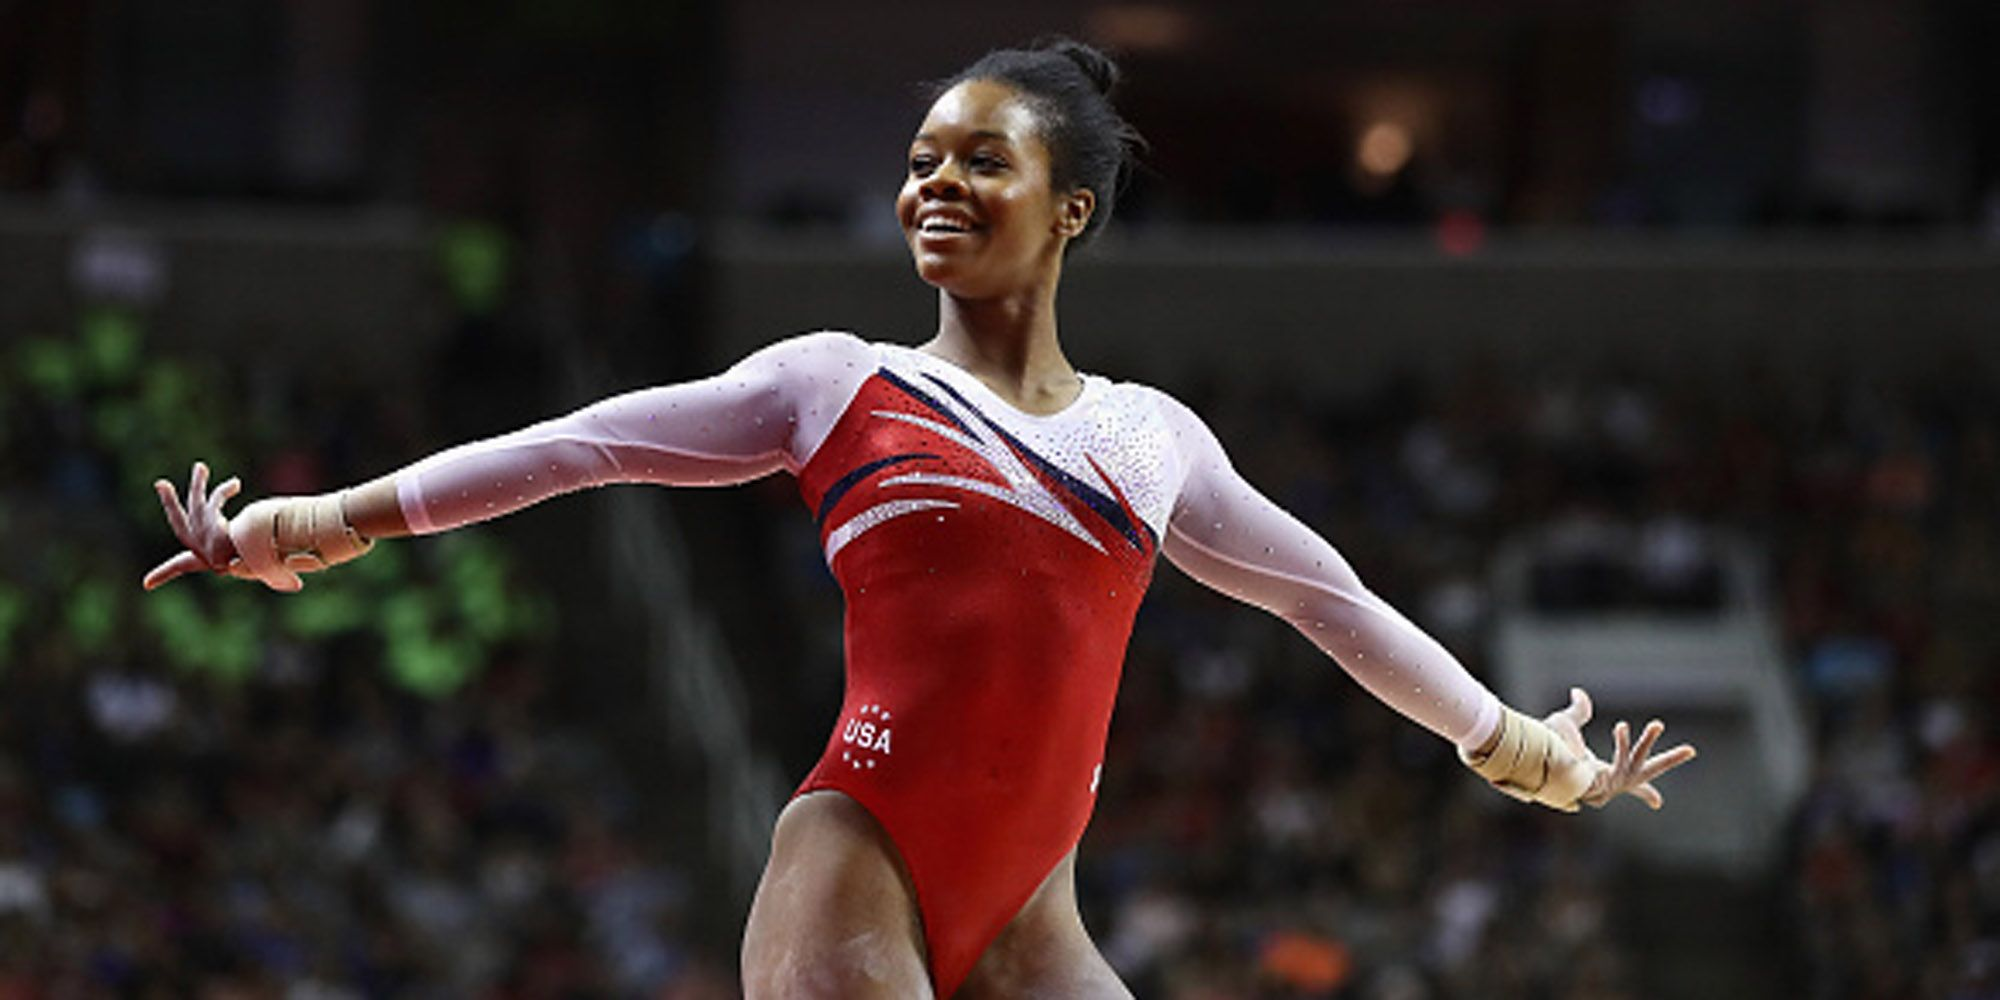 Facts About Gabby Douglas All About  Us Olympic Gymnast Gabrielle Douglas